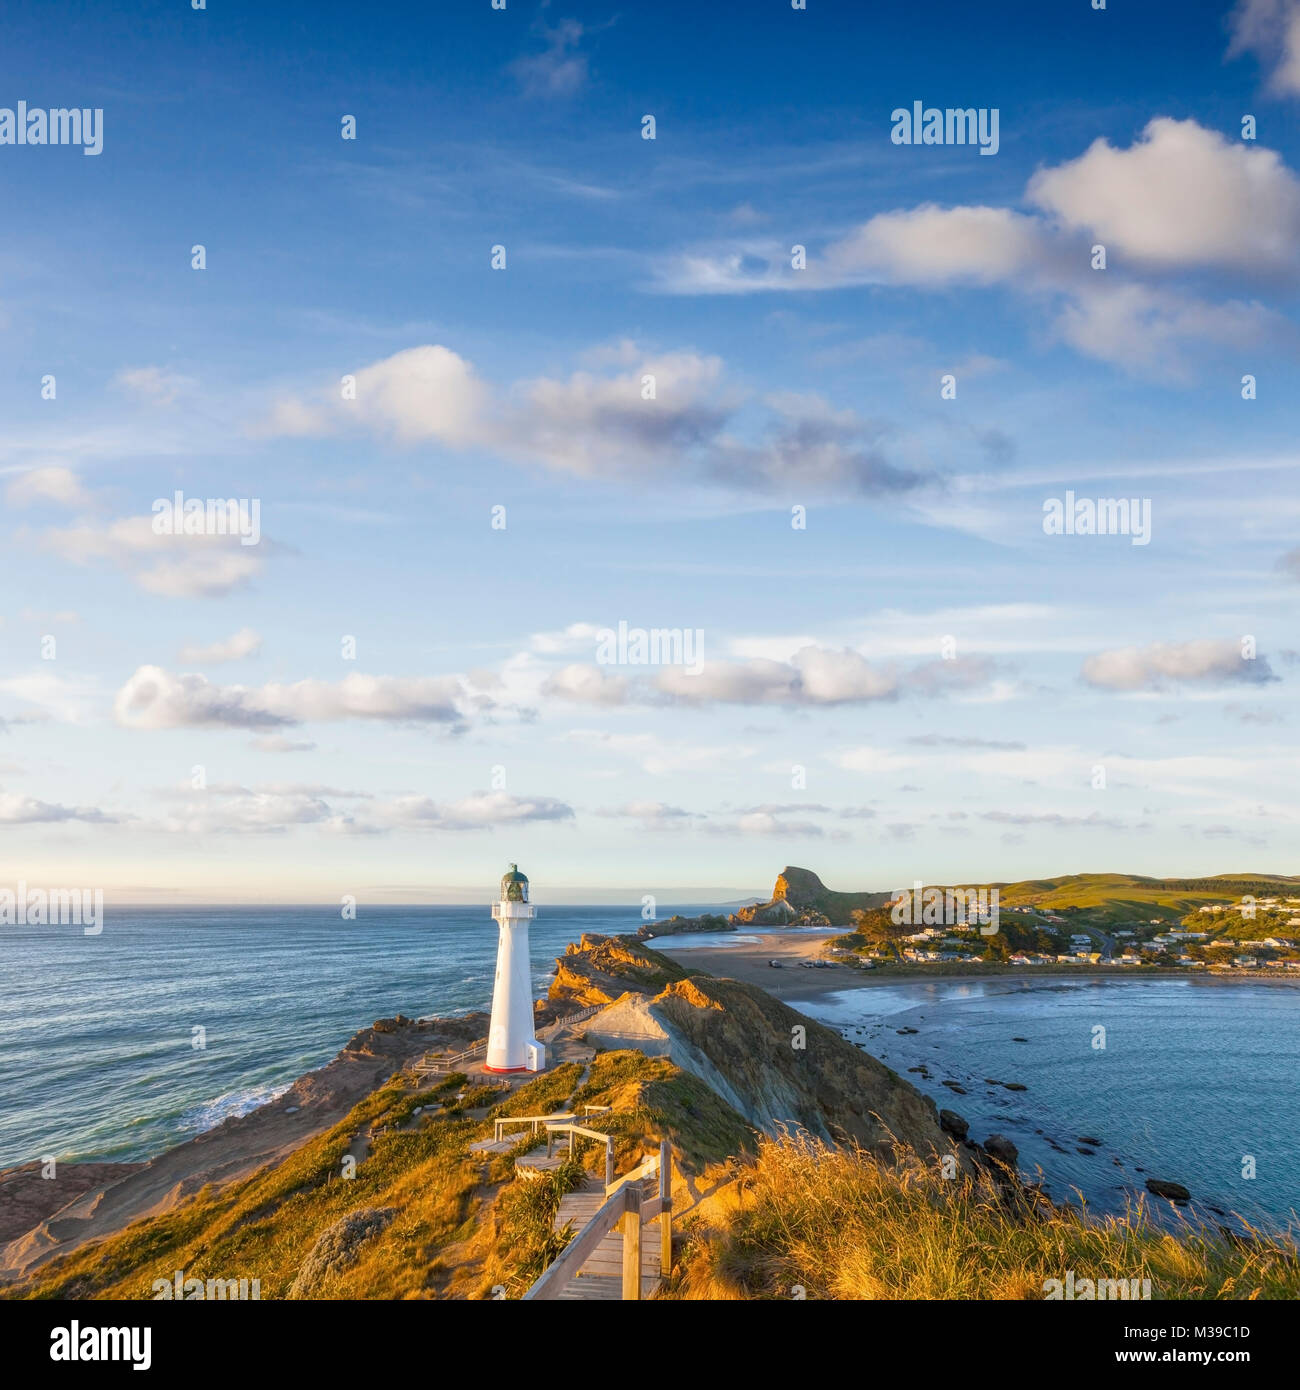 Castlepoint Lighthouse, Wairarapa, New Zealand, at sunrise. - Stock Image